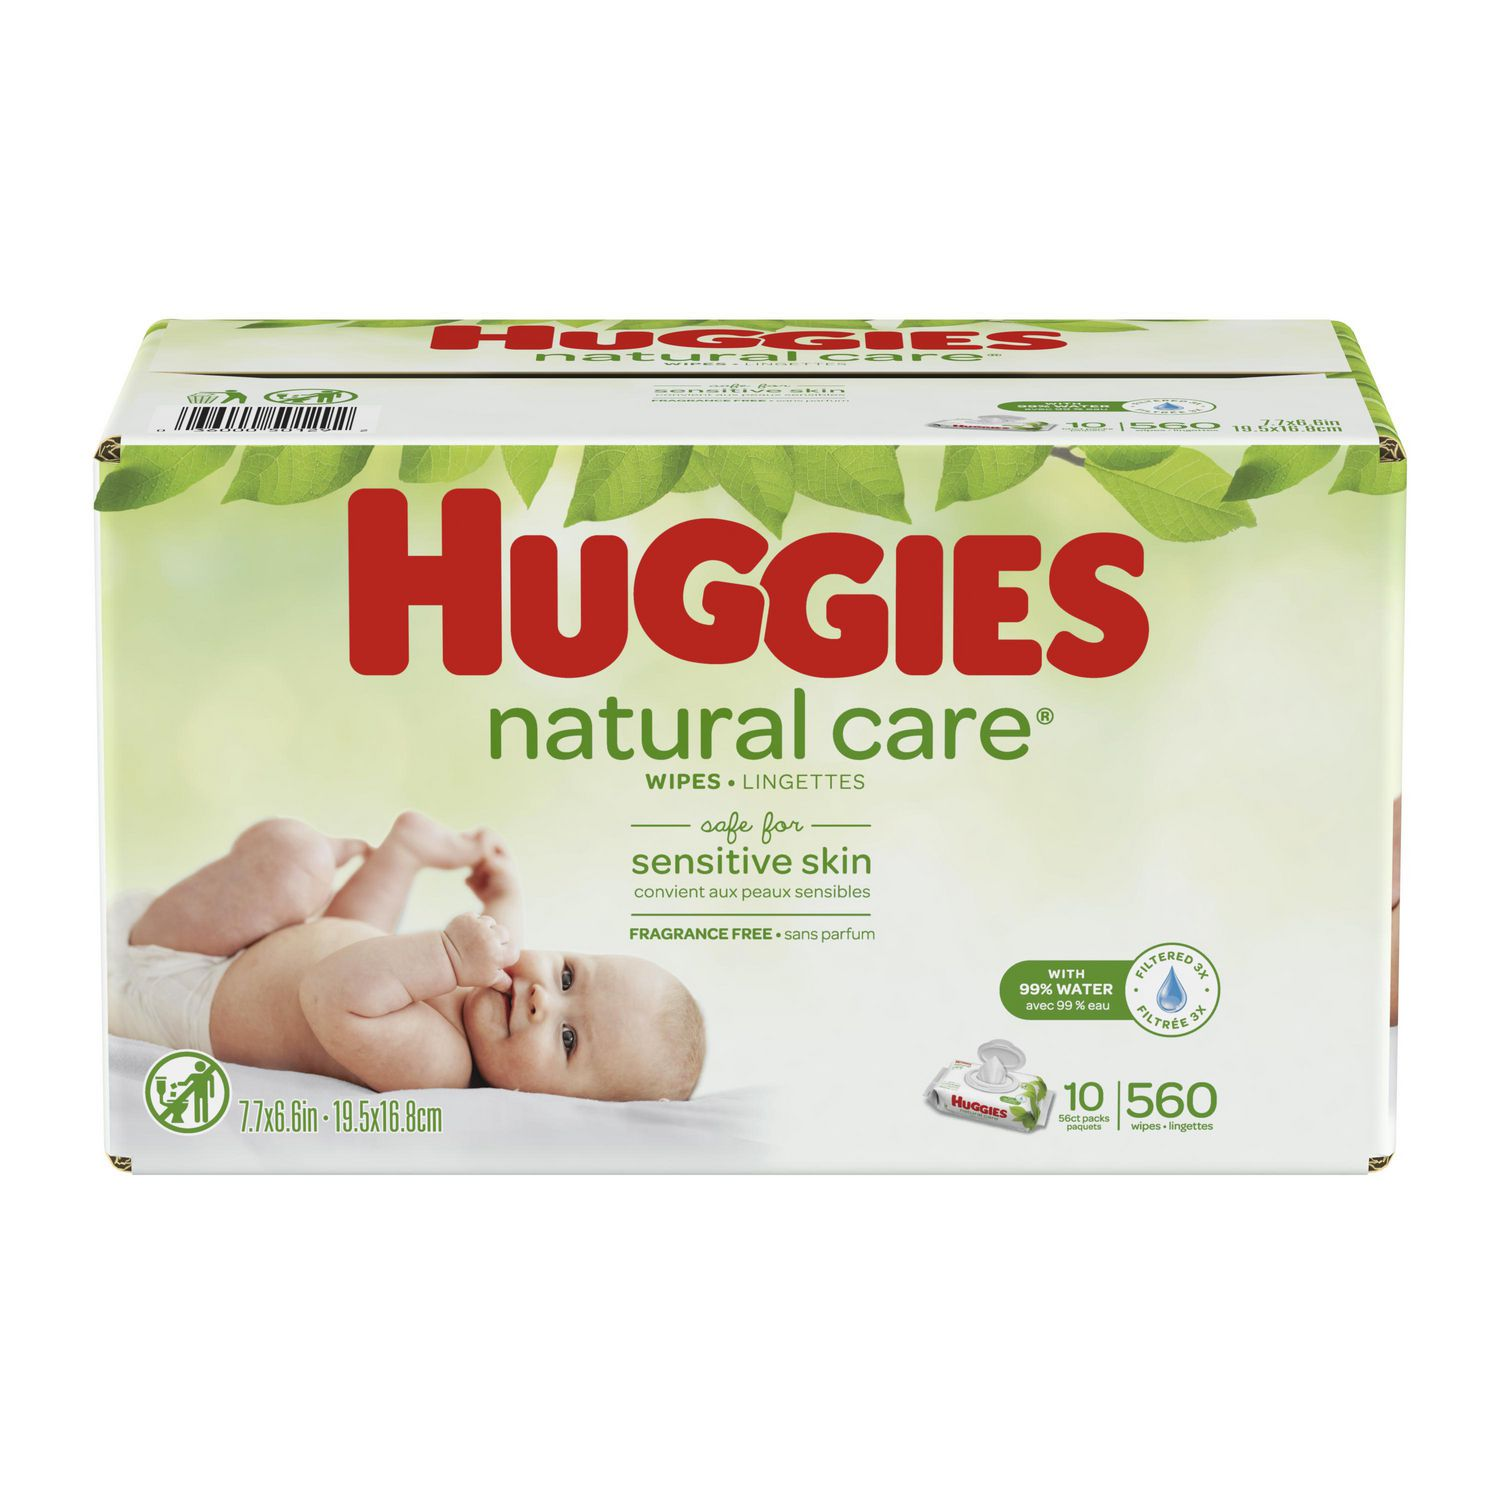 HUGGIES Natural Care Unscented Baby Wipes 504 Total Wipes Water-Based 3 Packs Sensitive 9 Total Flip Top Packs